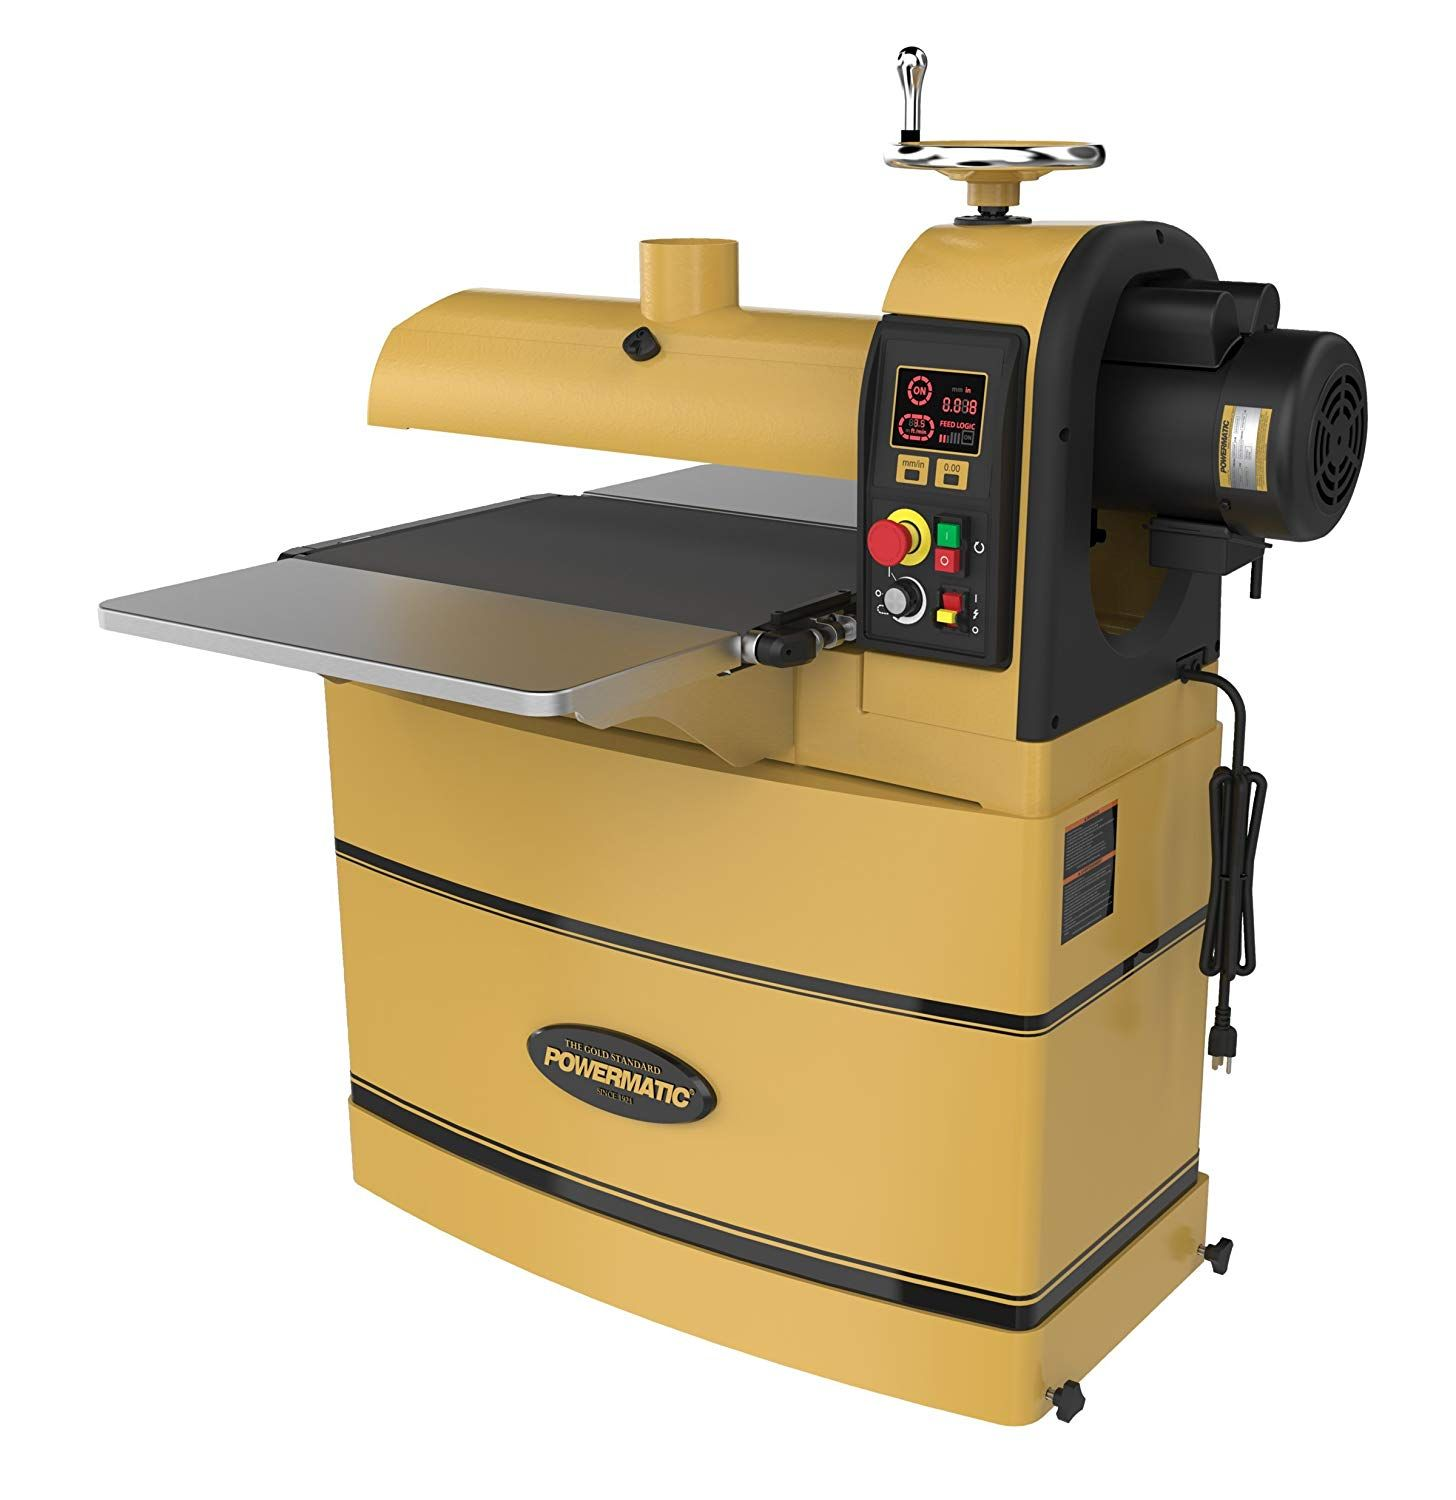 Drum Sander Vs Planer What Is The Difference In 2020 Woodworking Drums Rockler Woodworking